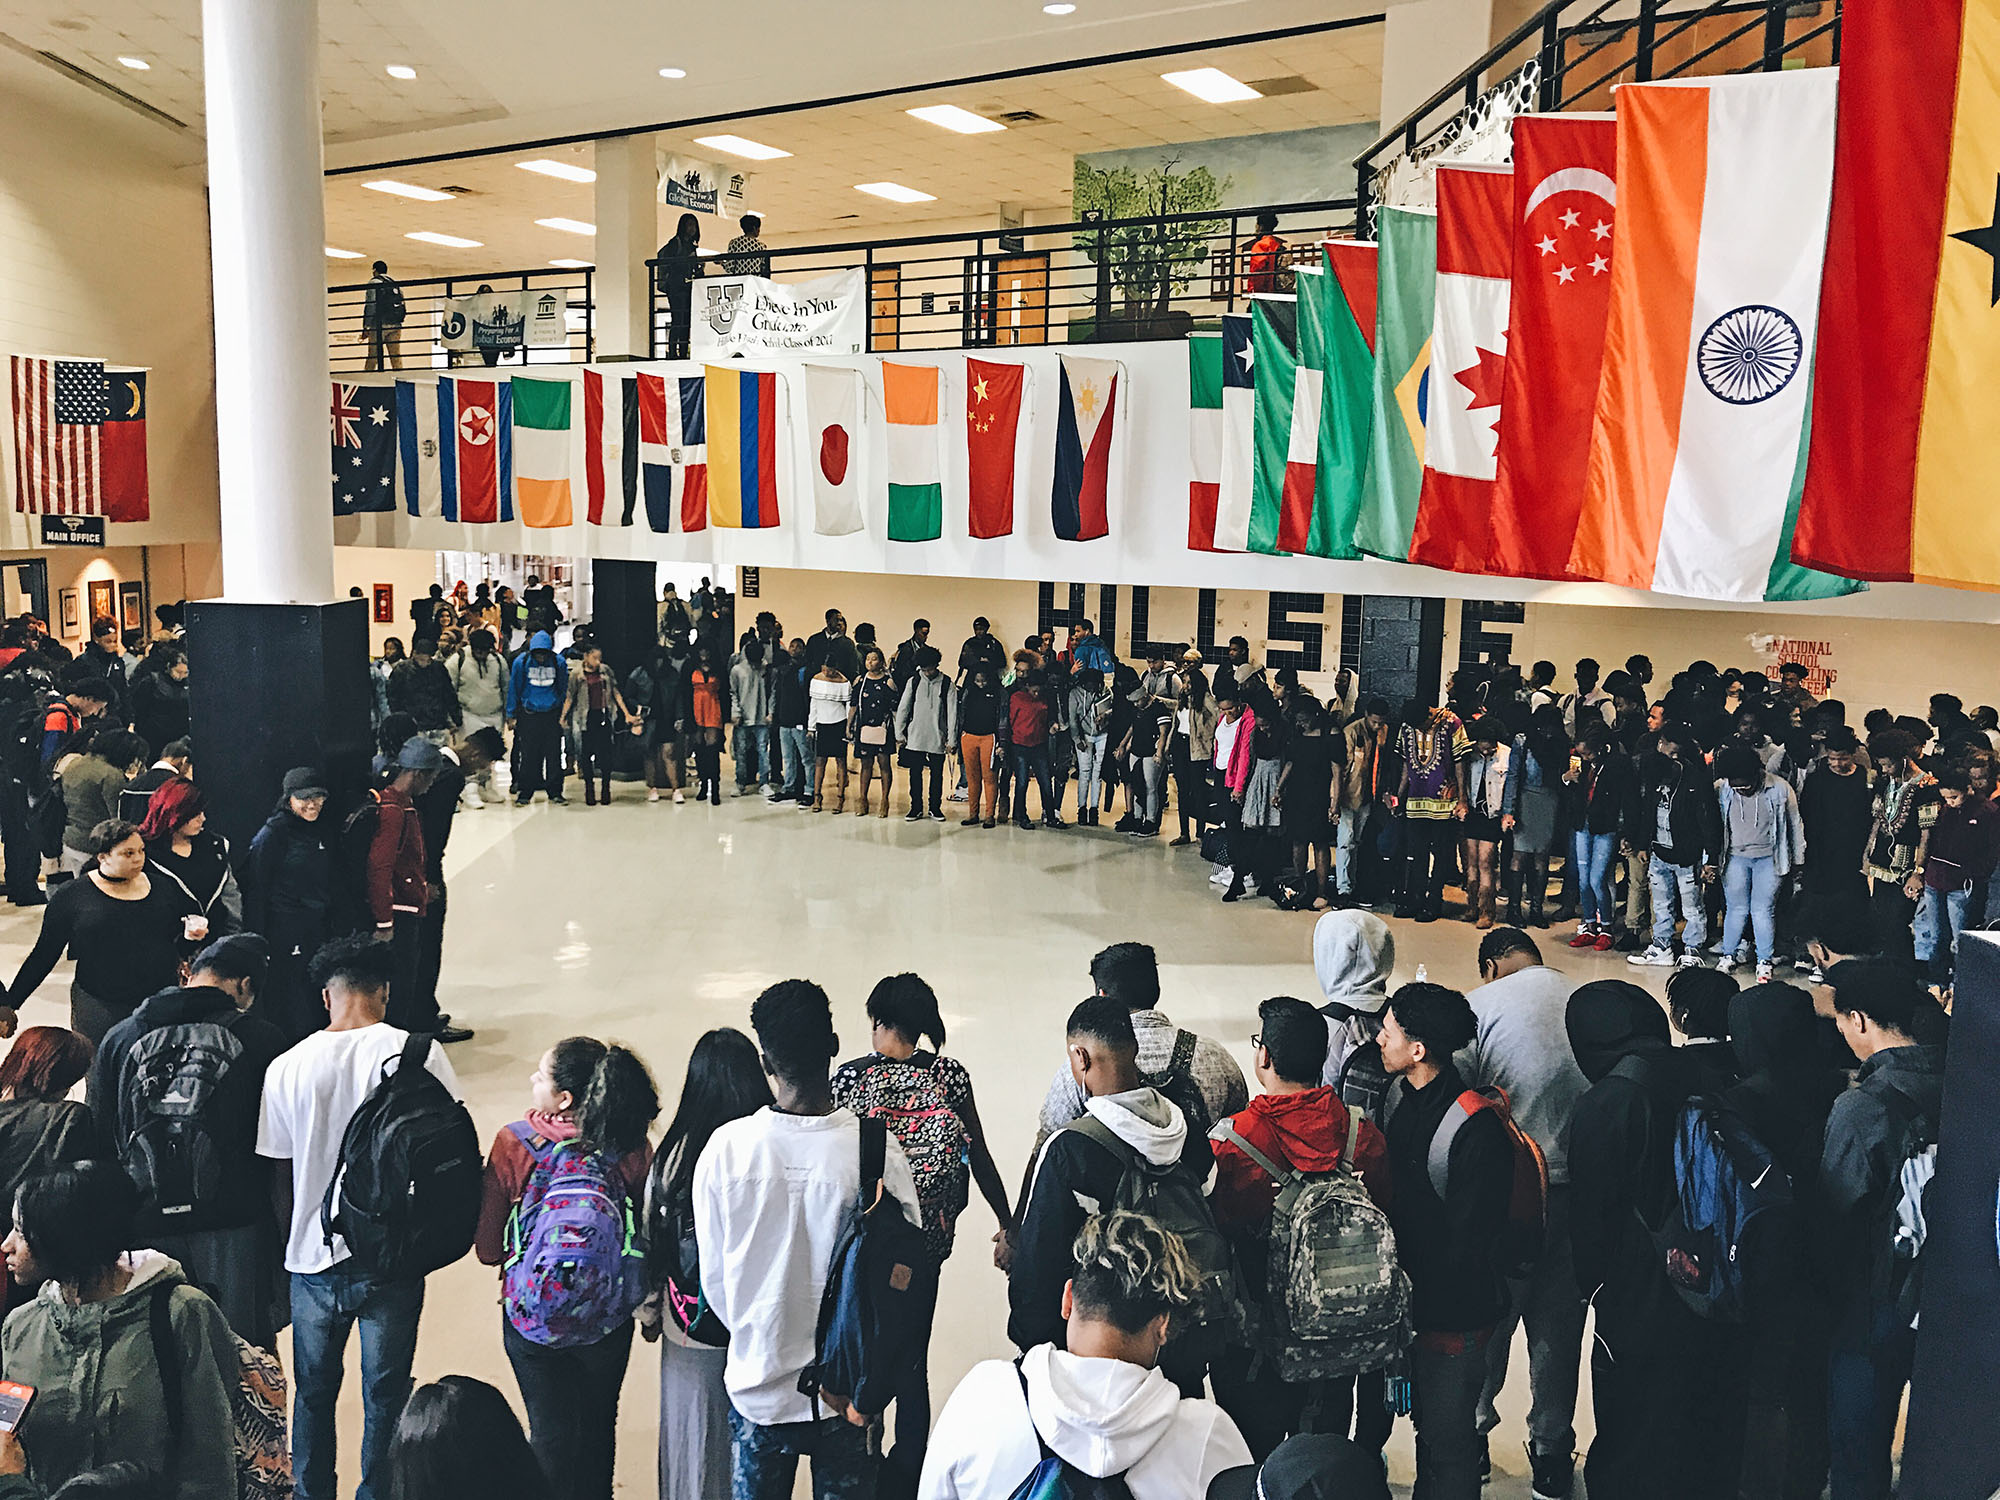 A moment of silence and reverence to start the day in the otherwise bustling lobby of Hillside High School. (Photo courtesy of Daniel Gwyn)